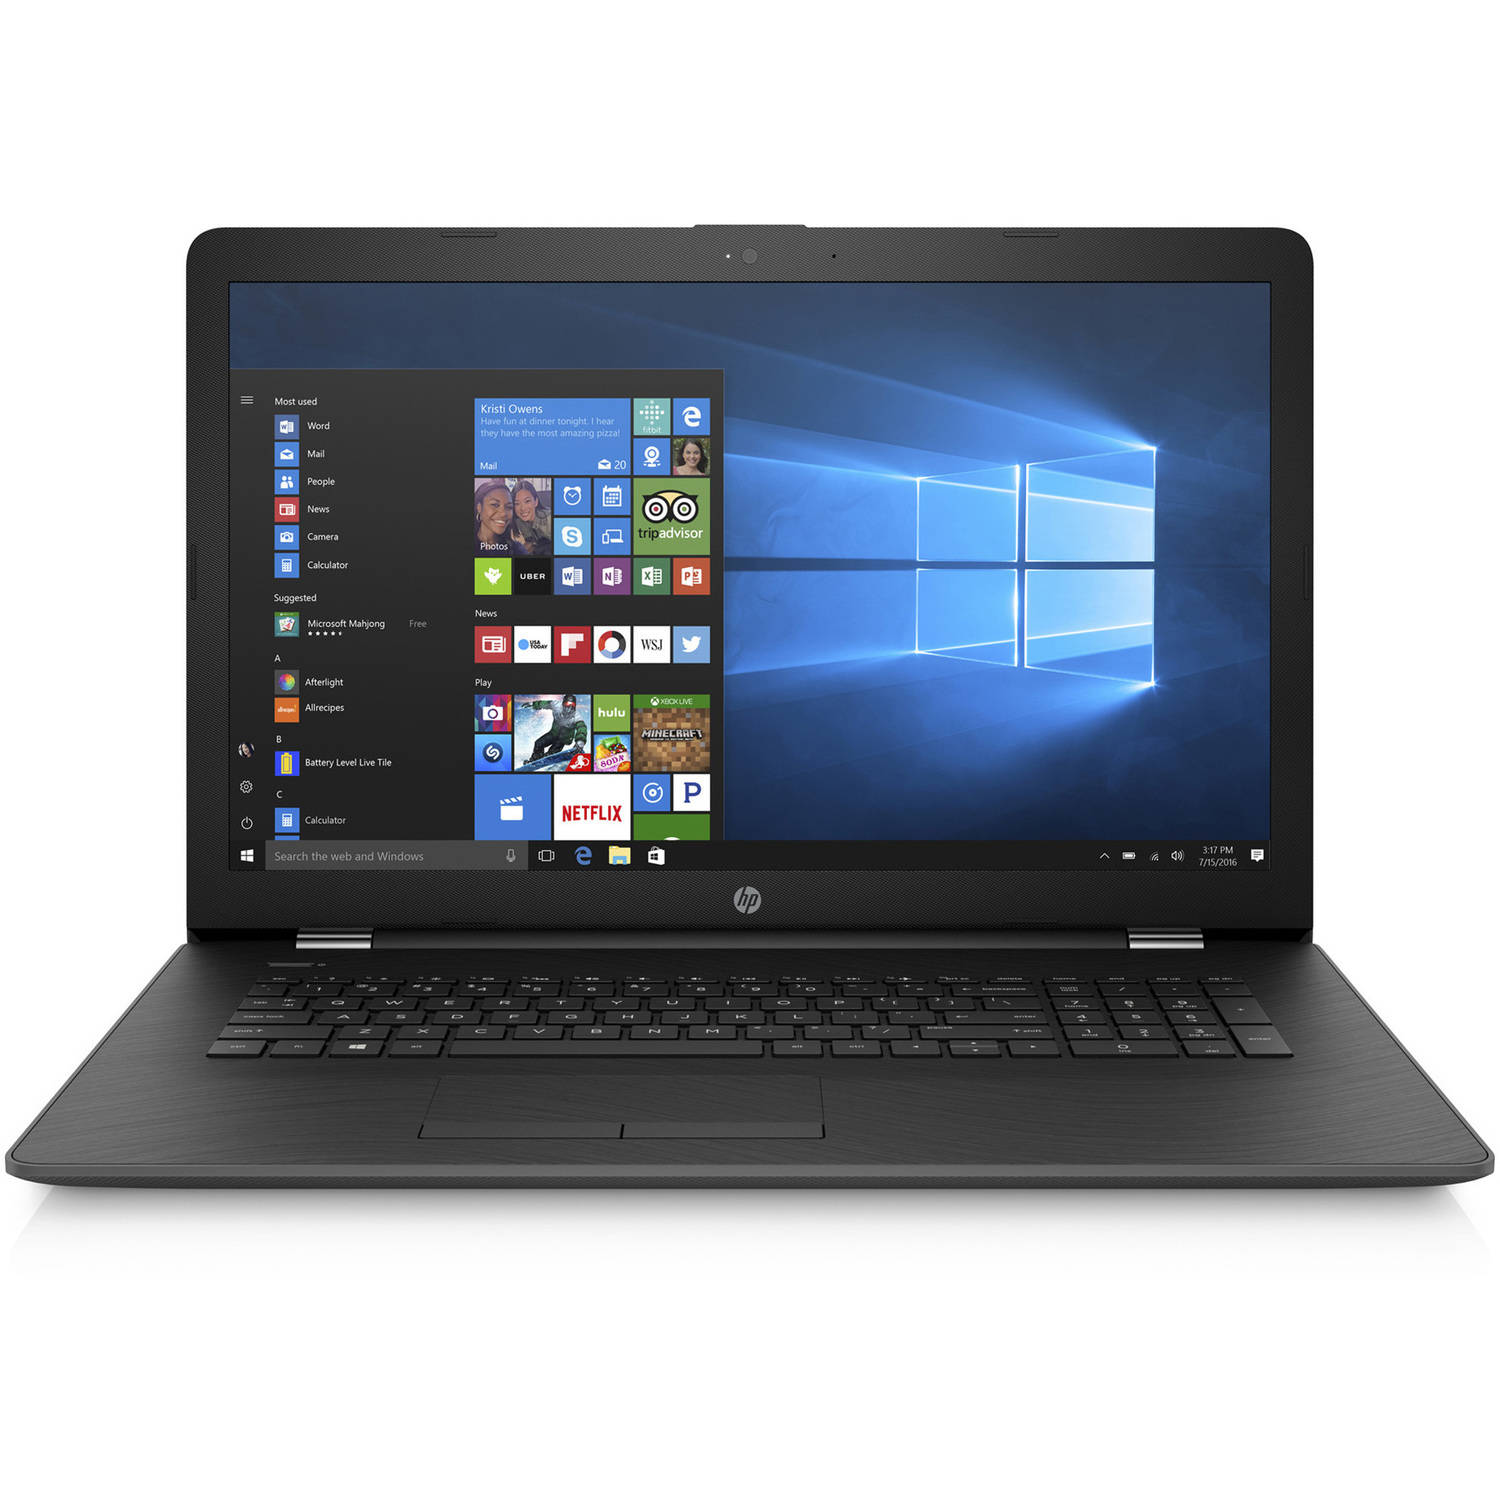 "HP 17-Ak010Nr 17.3"" Laptop, Windows 10 Home, AMD A9-9420 Dual-Core Processor, 4GB RAM, 500GB Hard Drive"